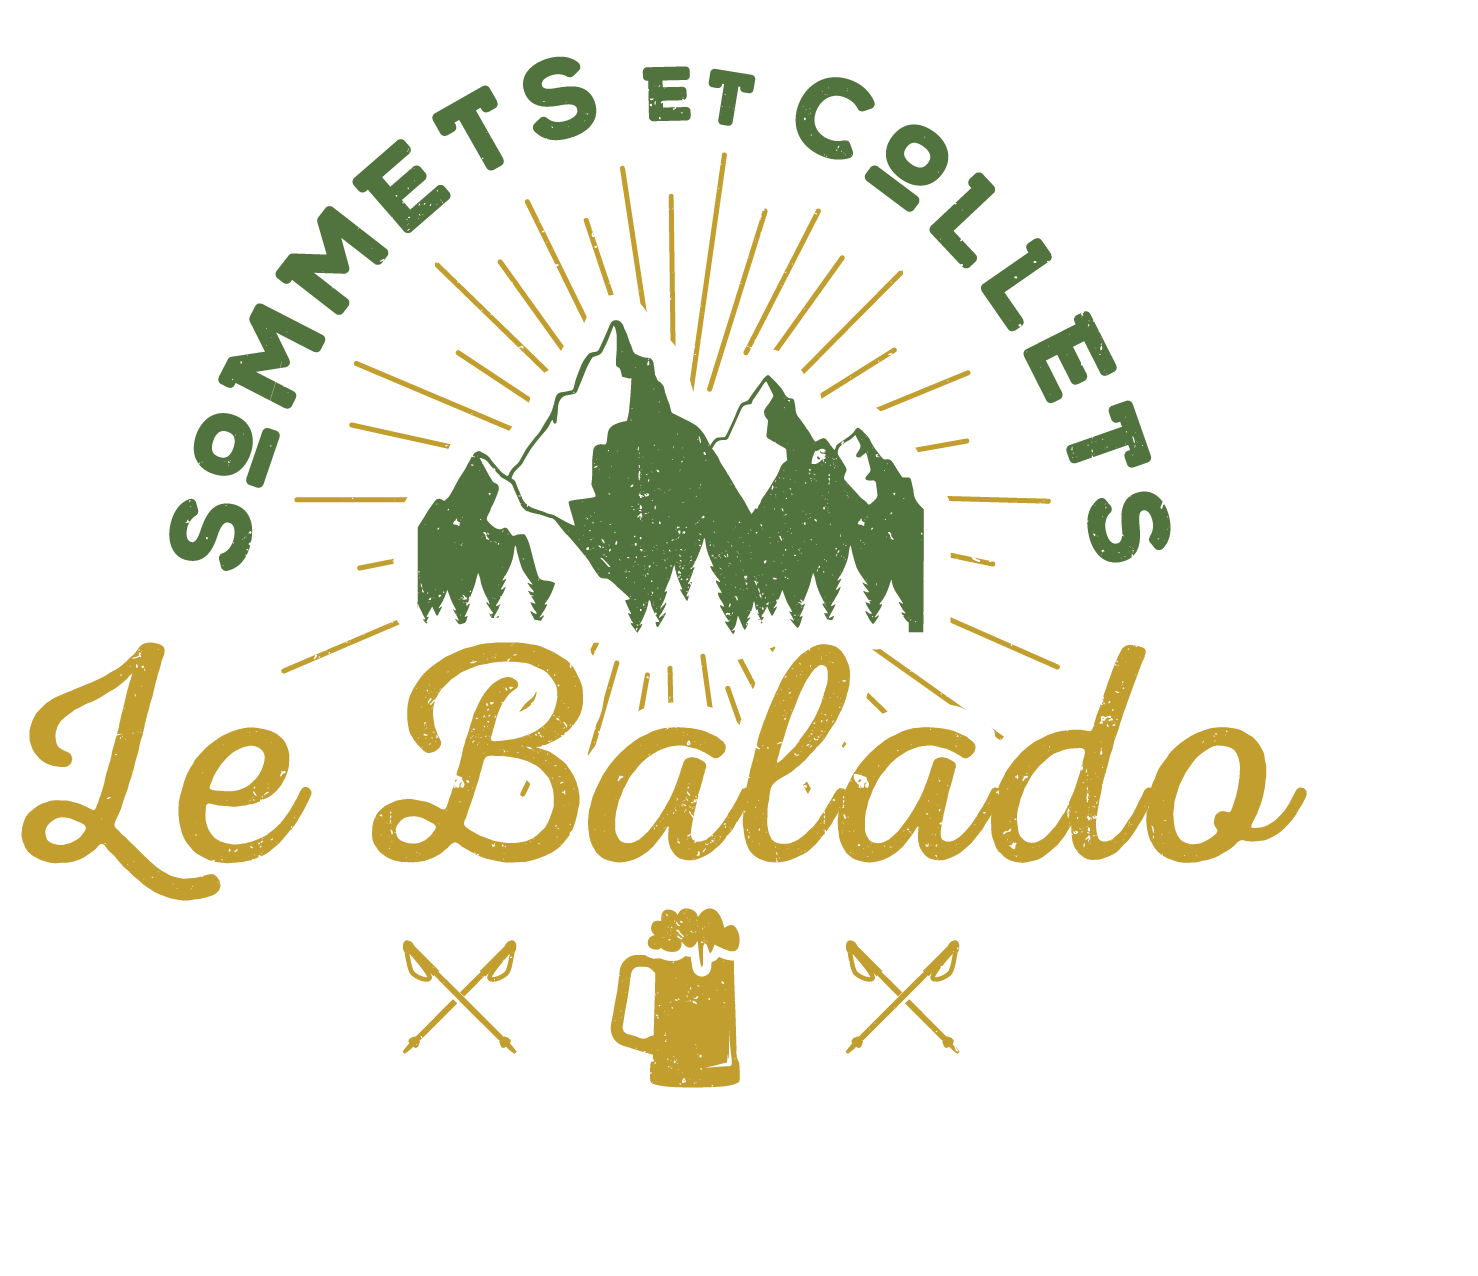 Logo sommets collets balado final